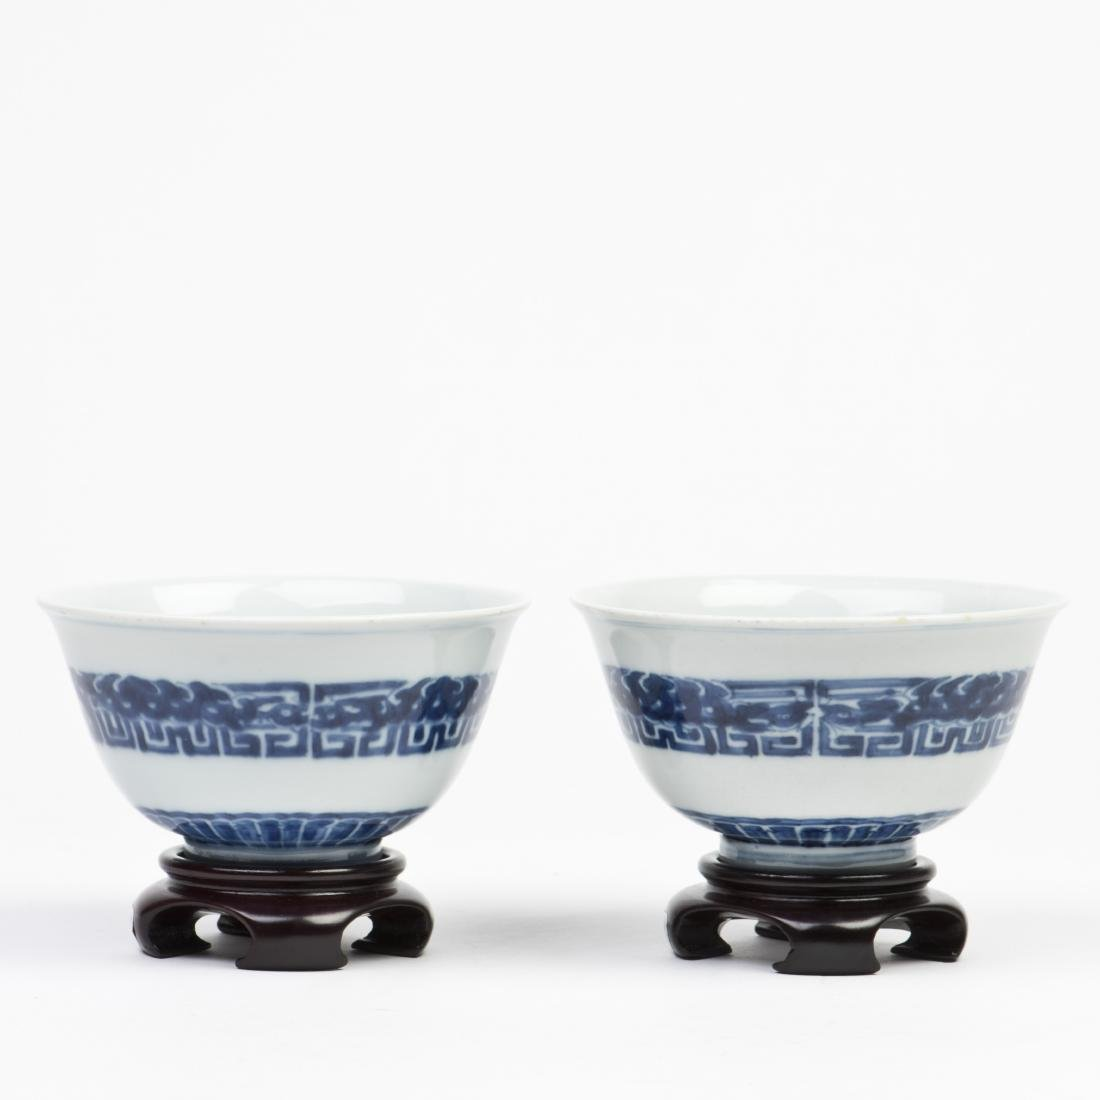 A PAIR OF BLUE AND WHITE BOWLS WITH STAND, 18TH CENTURY